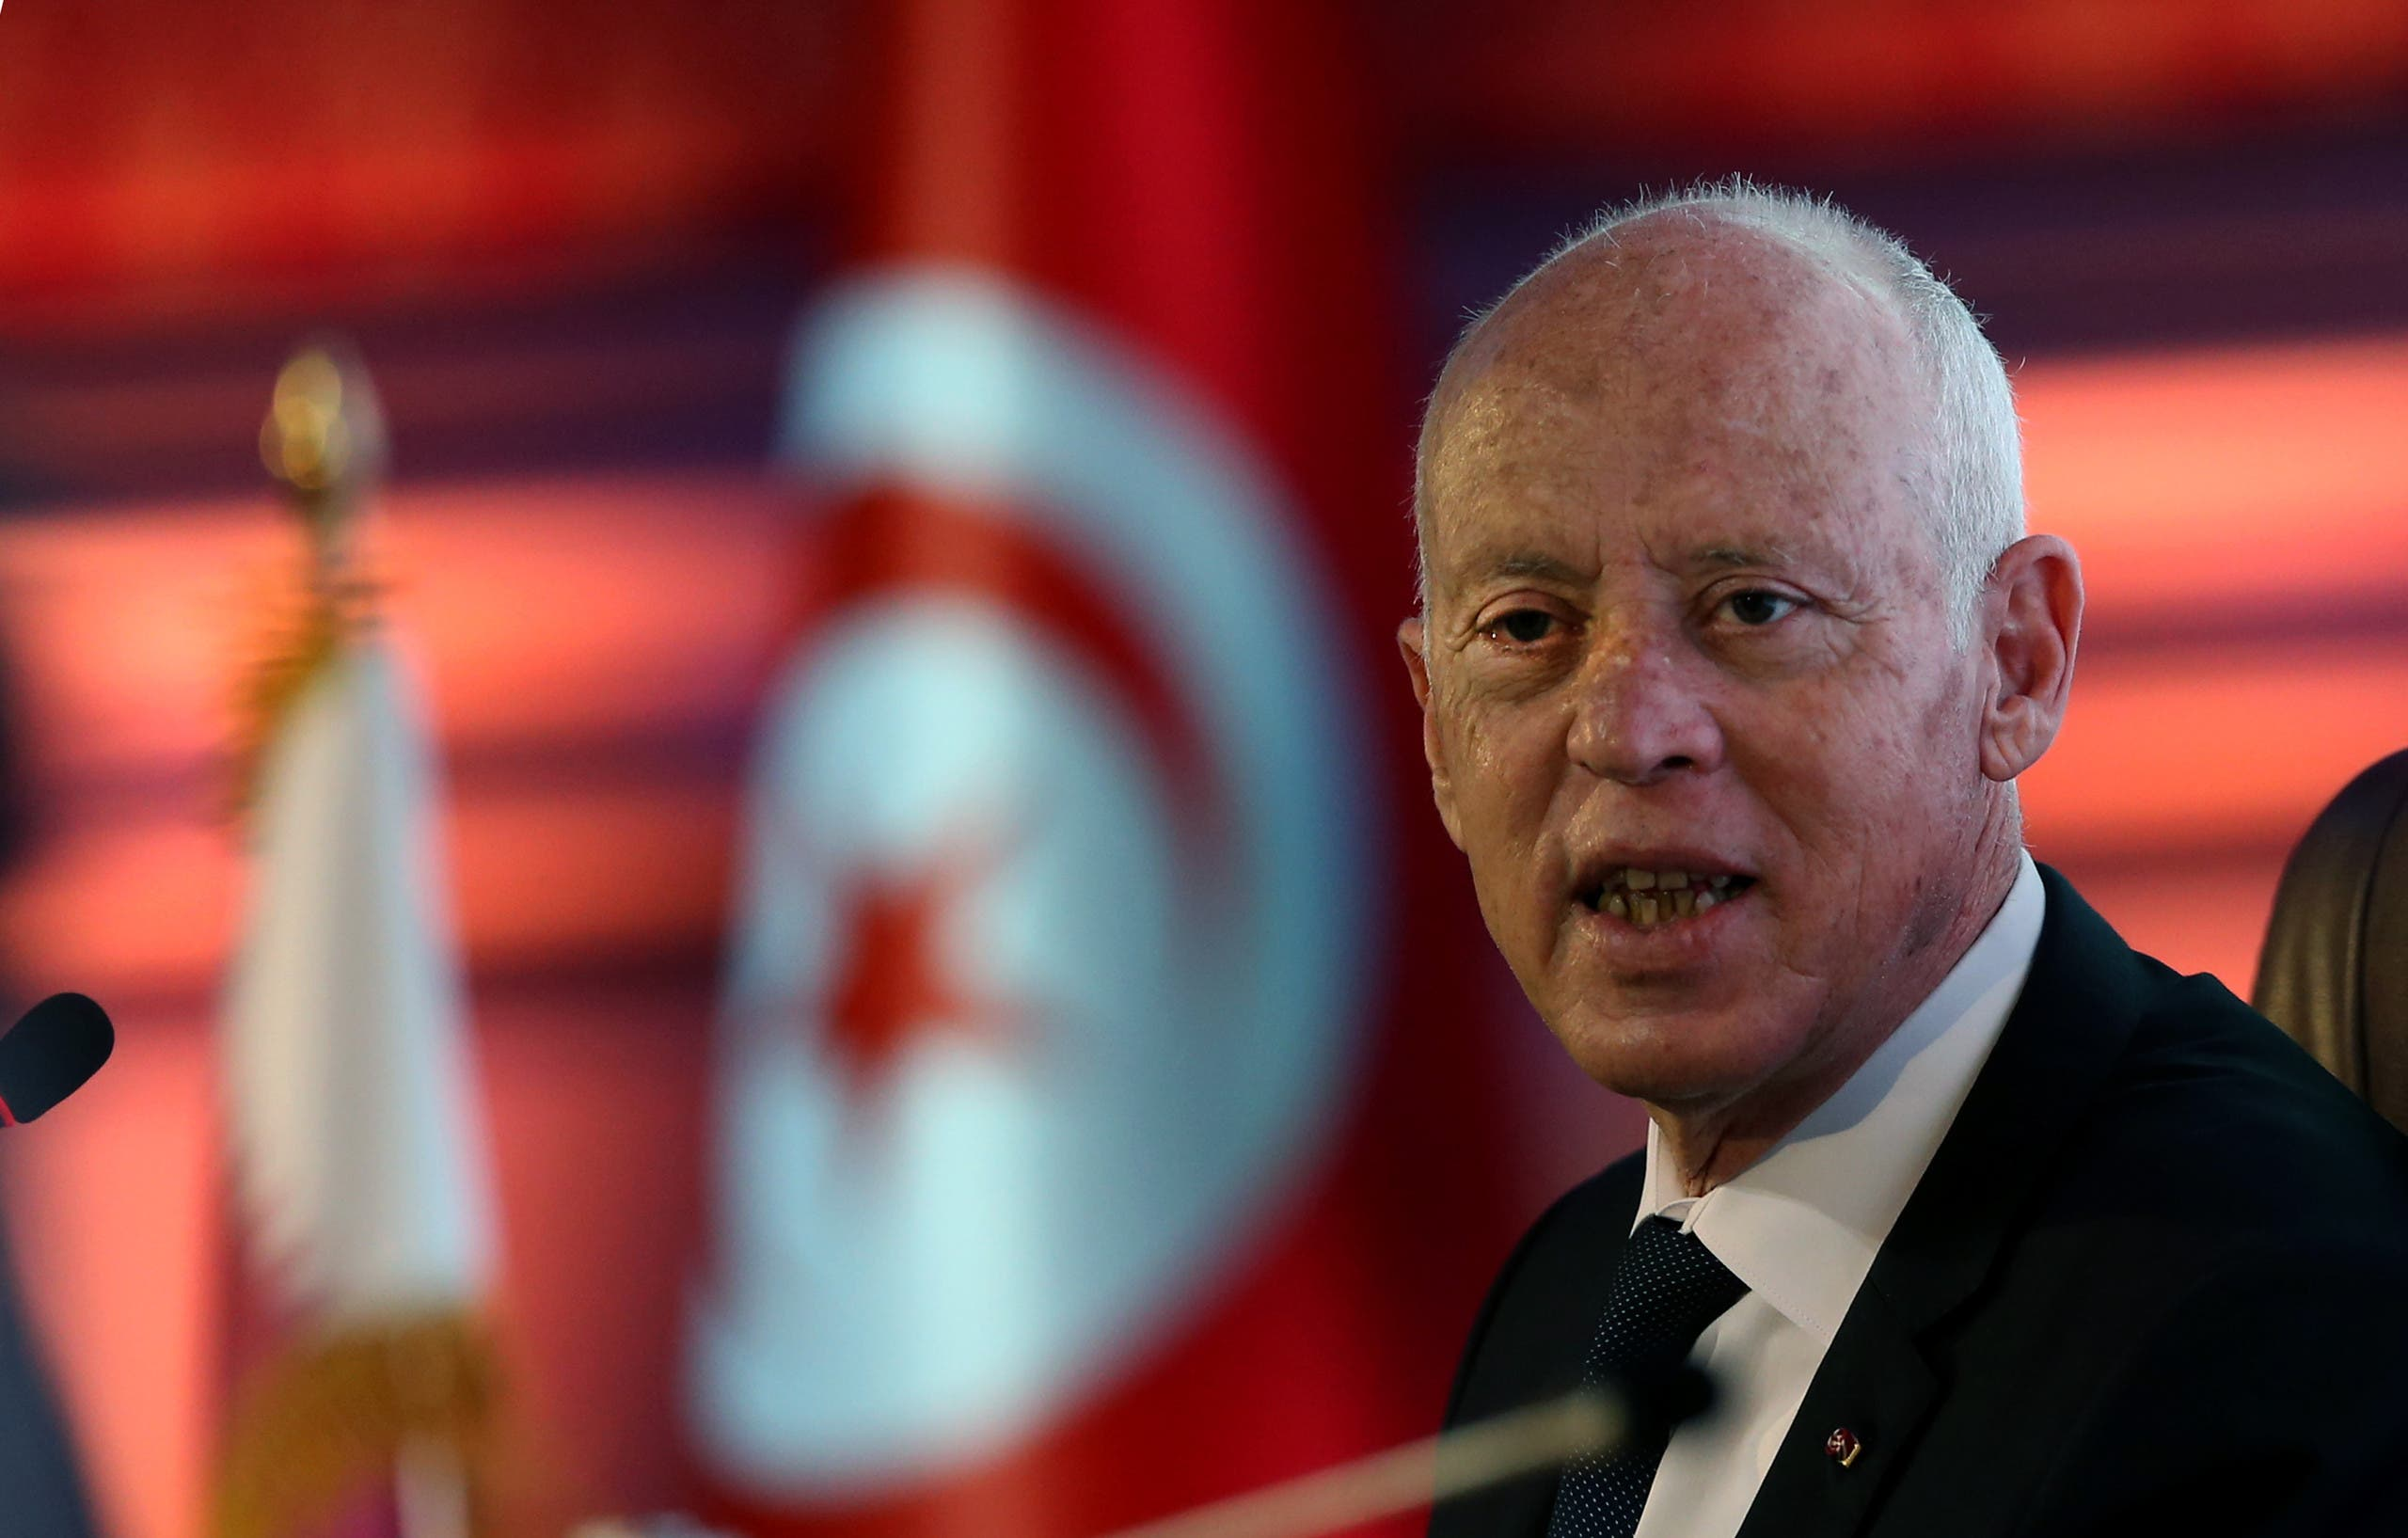 Tunisian President Kais Saied attends a talk on constitutional law during a state visit to Qatar at an event hosted by Lusail University, on November 16, 2020. (File photo: AFP)